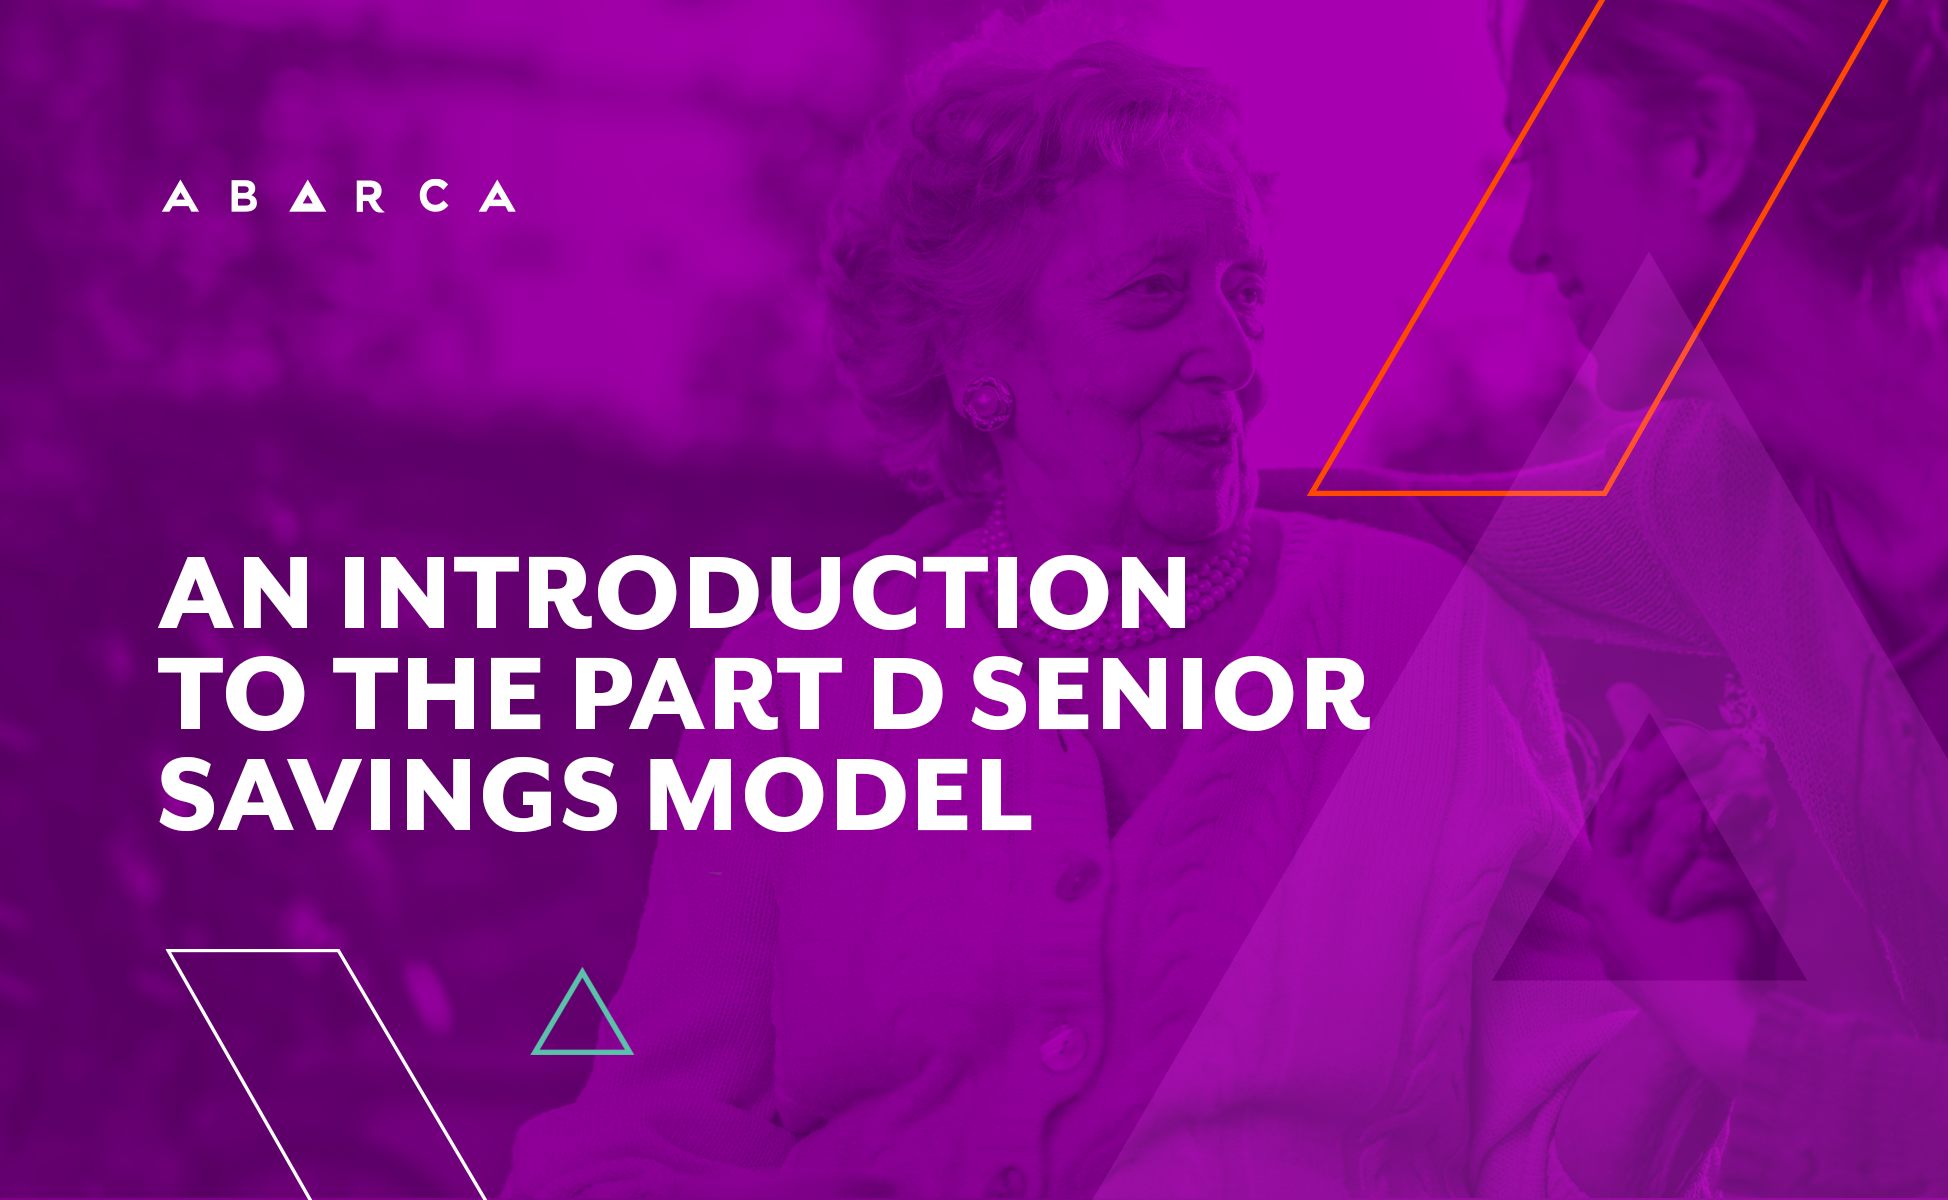 Abarca Health_An introduction to the Part D Senior Savings Model